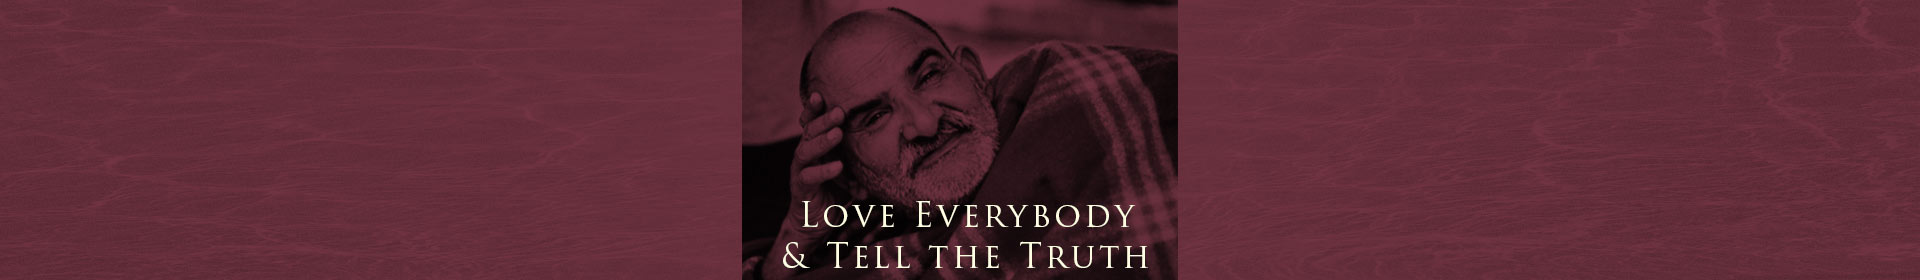 Love Everybody and Tell the Truth